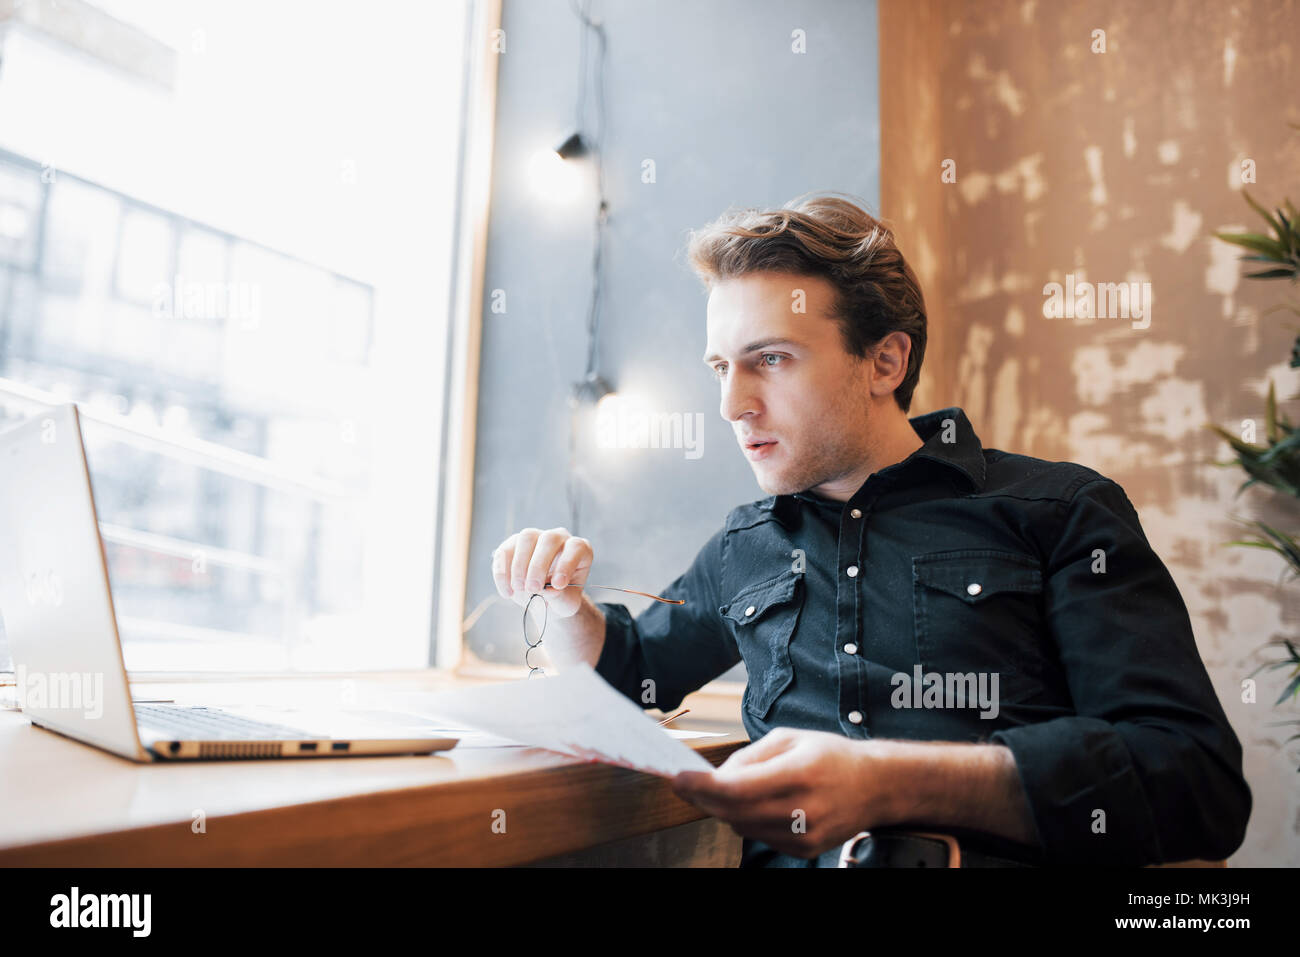 Relaxed young professional surfing the Internet on his laptop in a cafe - Stock Image